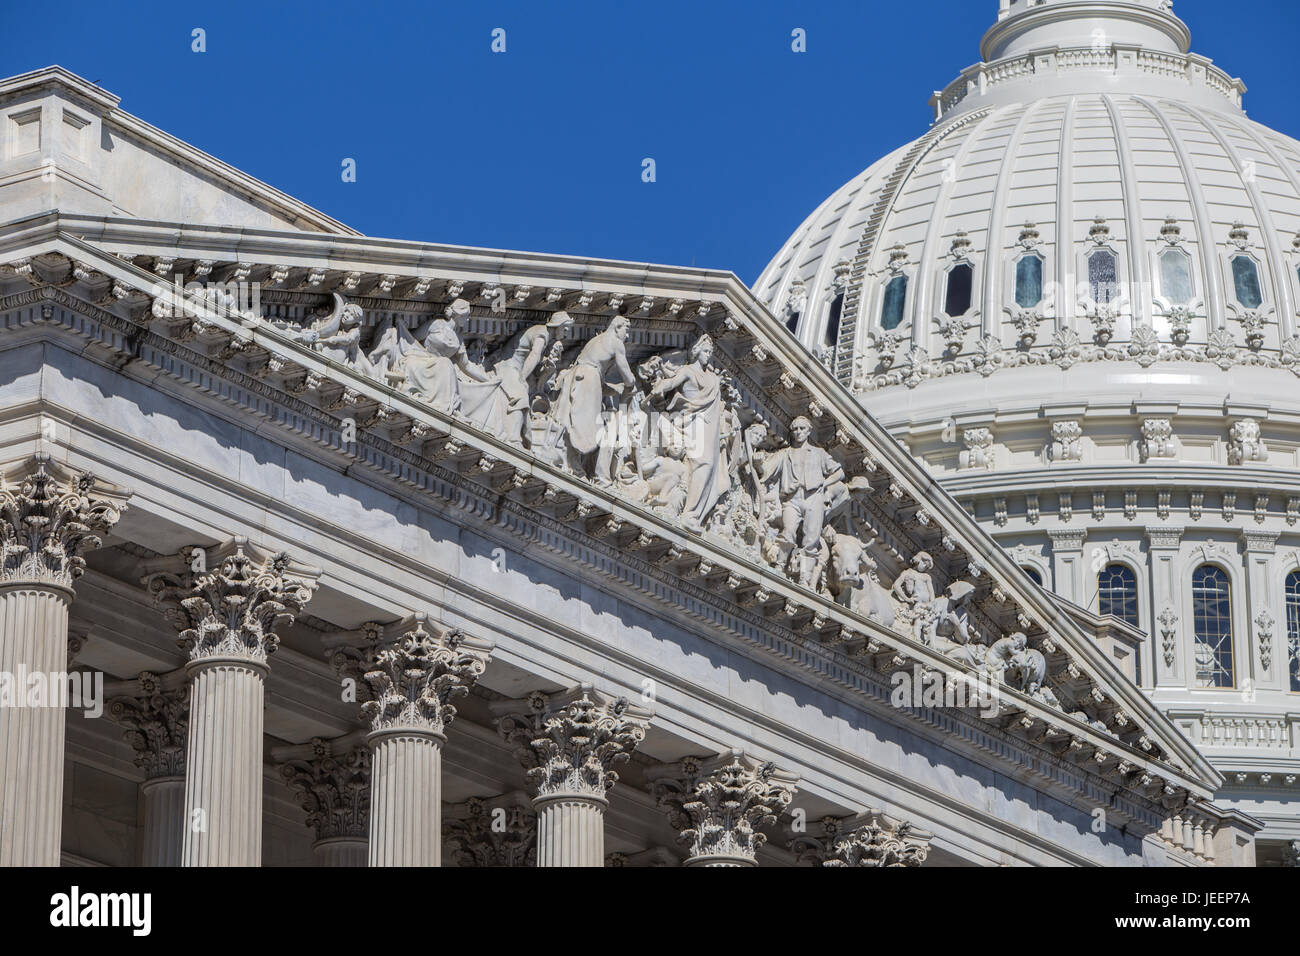 The Apotheosis of Democracy Pediment over the entrance to the south wing (House wing) of the U.S. Capitol Building - Stock Image